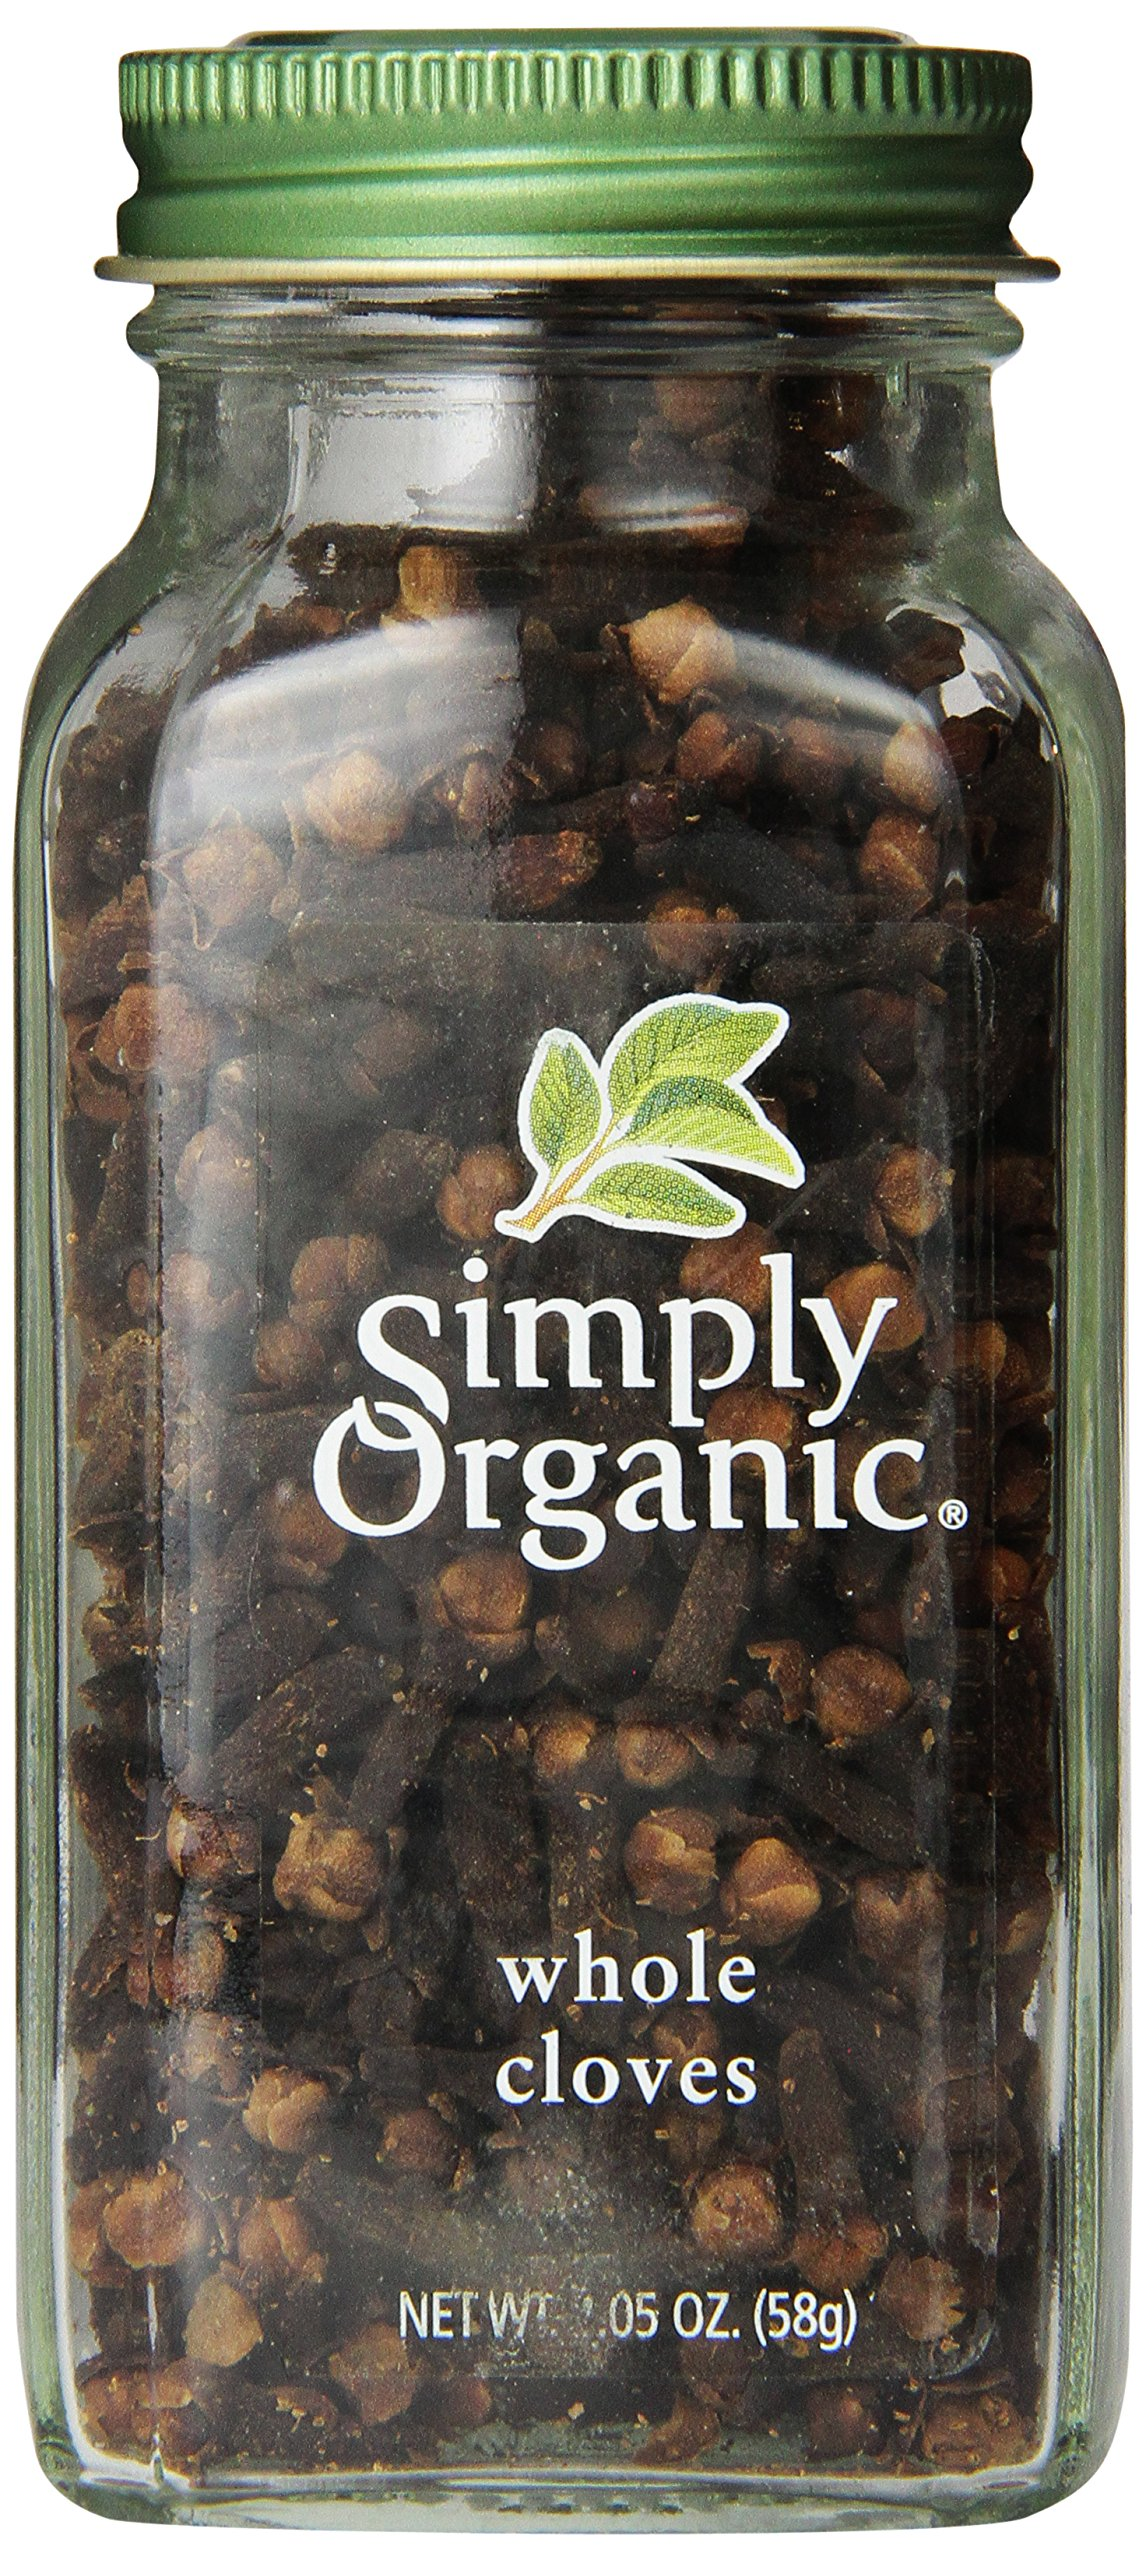 Simply Organic Whole Cloves, 2.05 Ounce